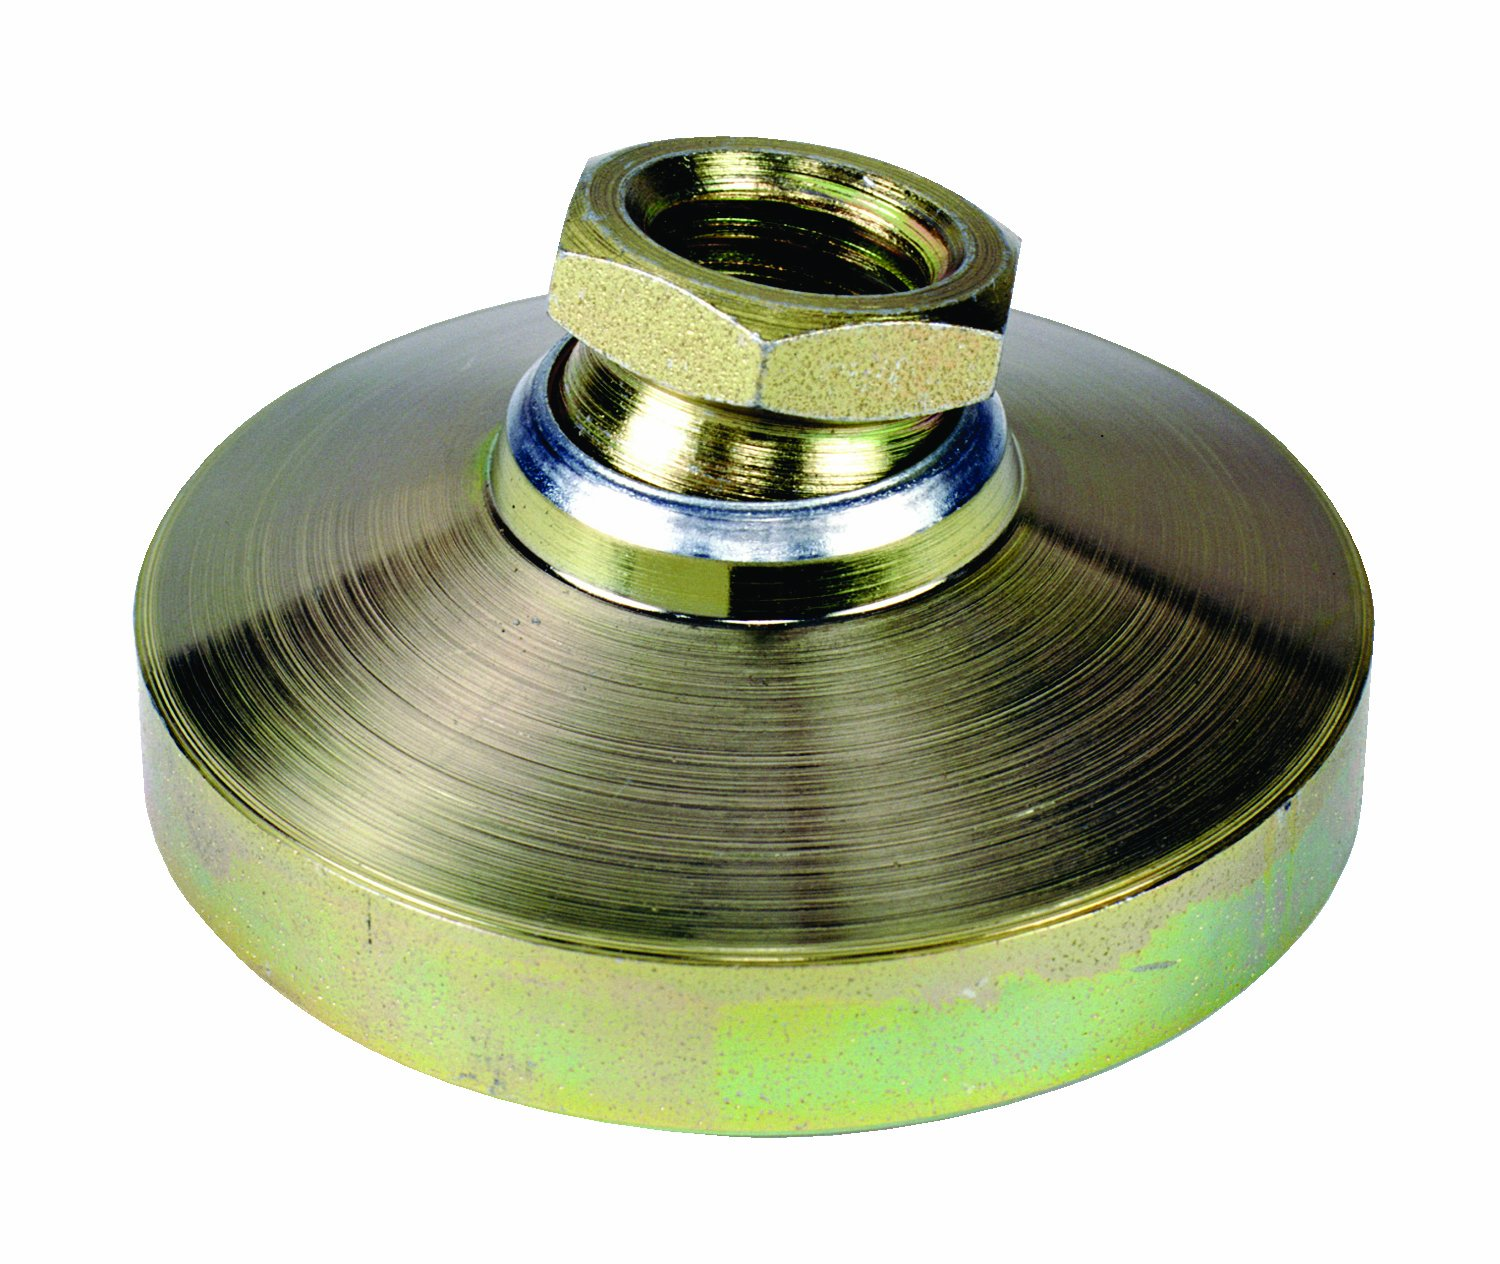 TE-CO 44434 Leveling Pad Zinc Plated, 3/4-10 Thread Size (2-Pack)